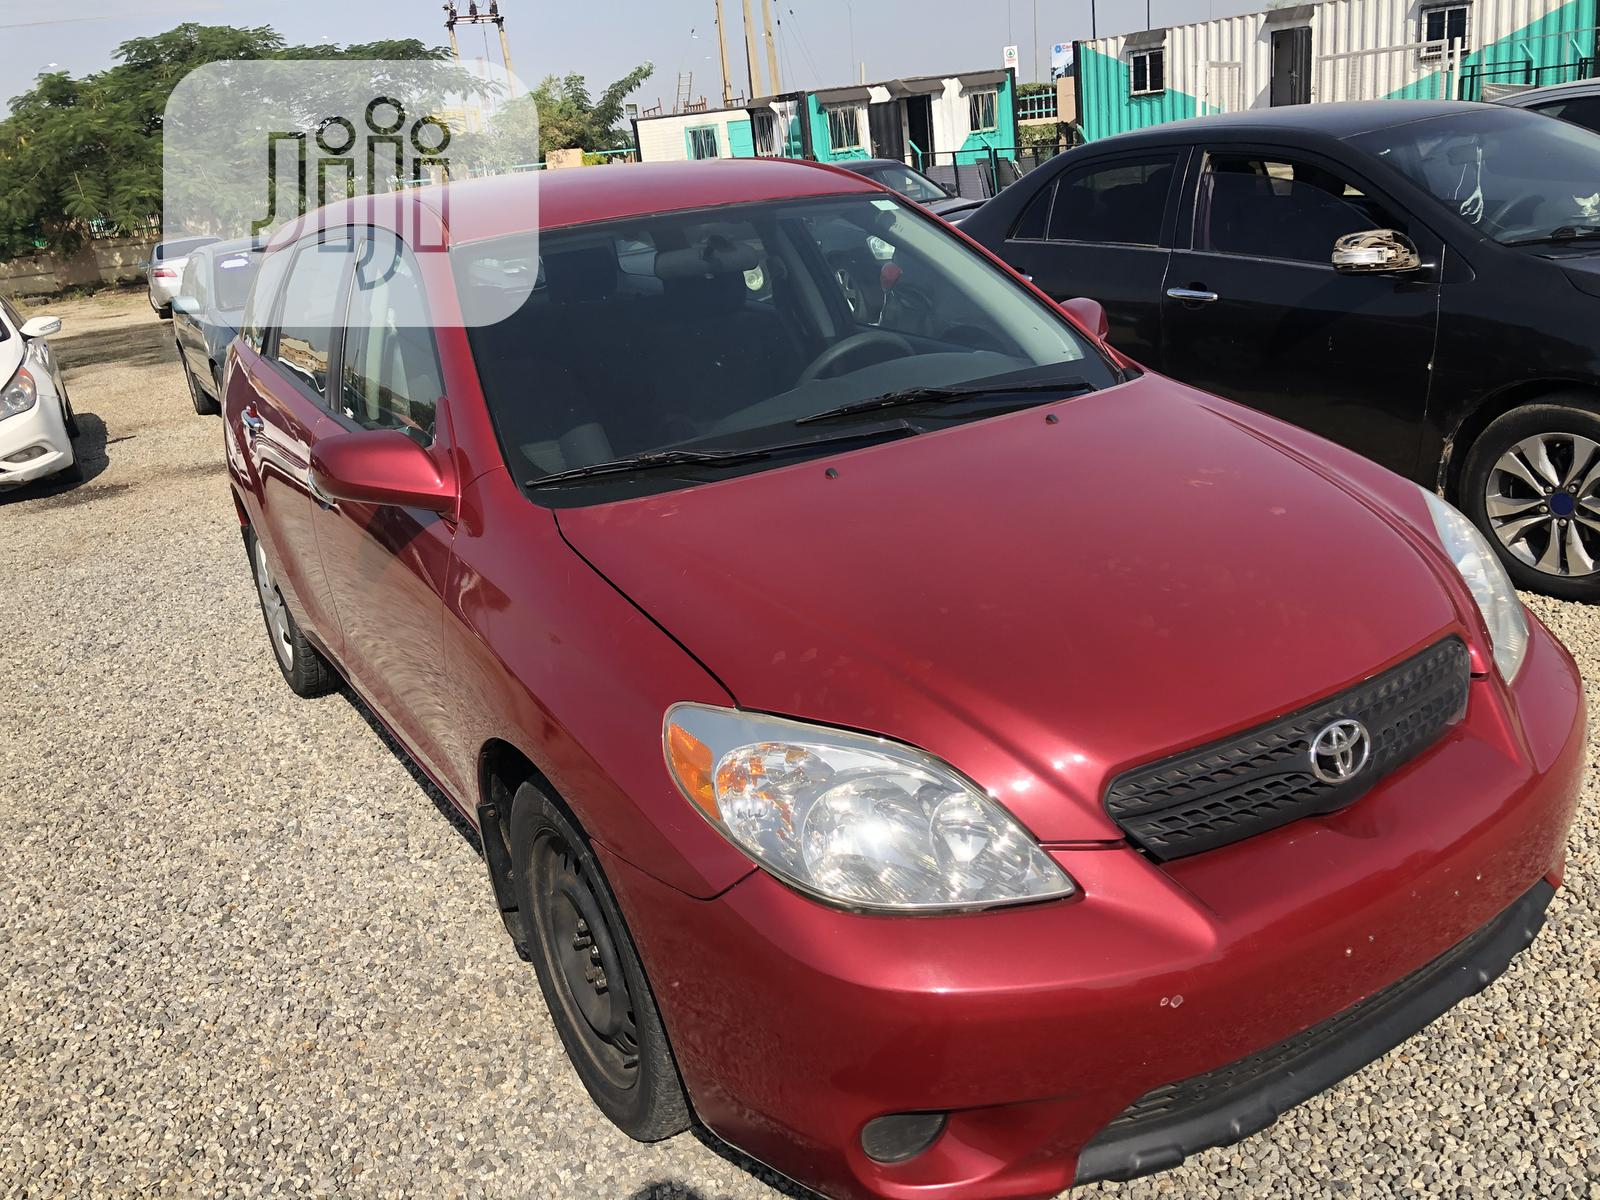 Toyota Matrix 2006 Red In Jabi Cars The Capital Company Jiji Ng For Sale In Jabi Buy Cars From The Capital Company On Jiji Ng